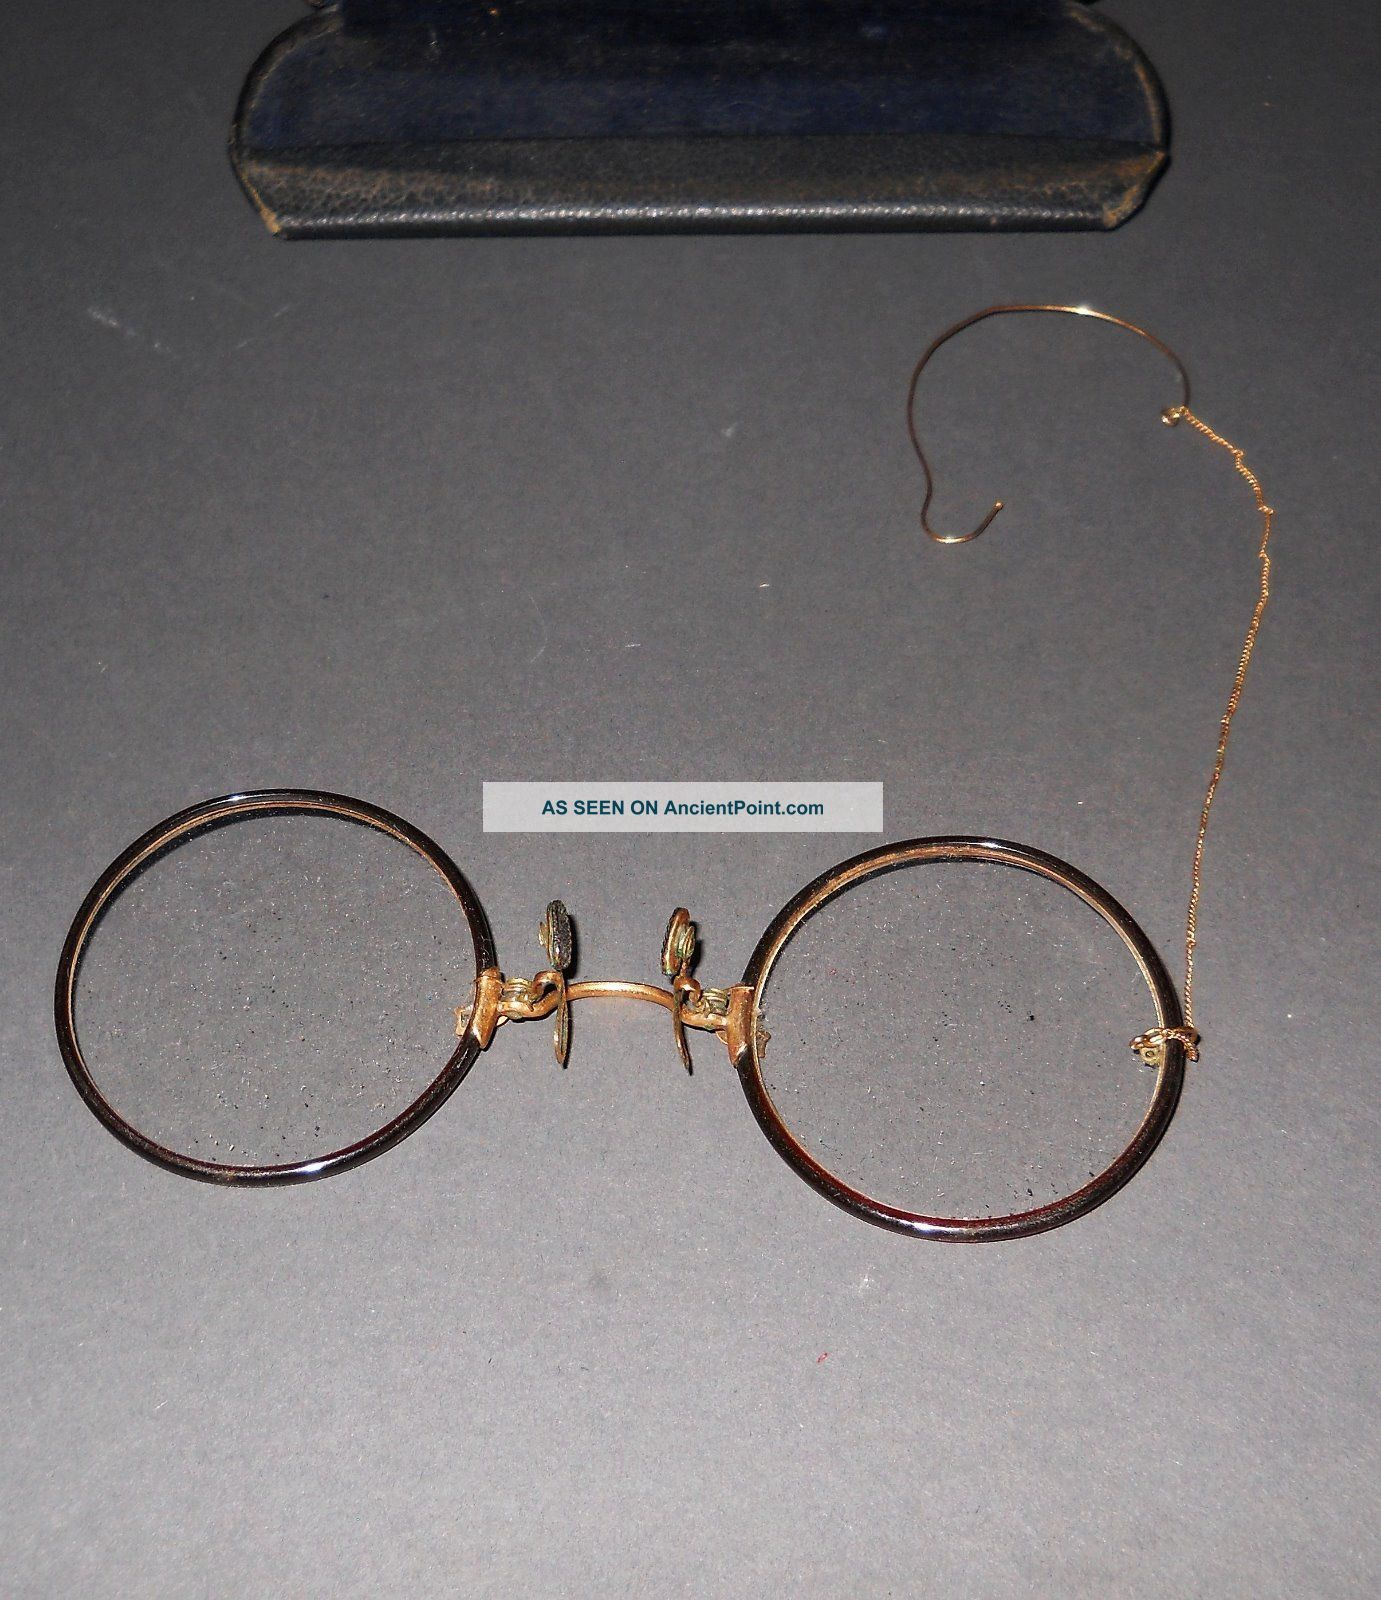 Antique Shur - On Pince Nez Hard - Bridge Eyeglasses,  Gf Bridgechain - Earhook & Case Optical photo